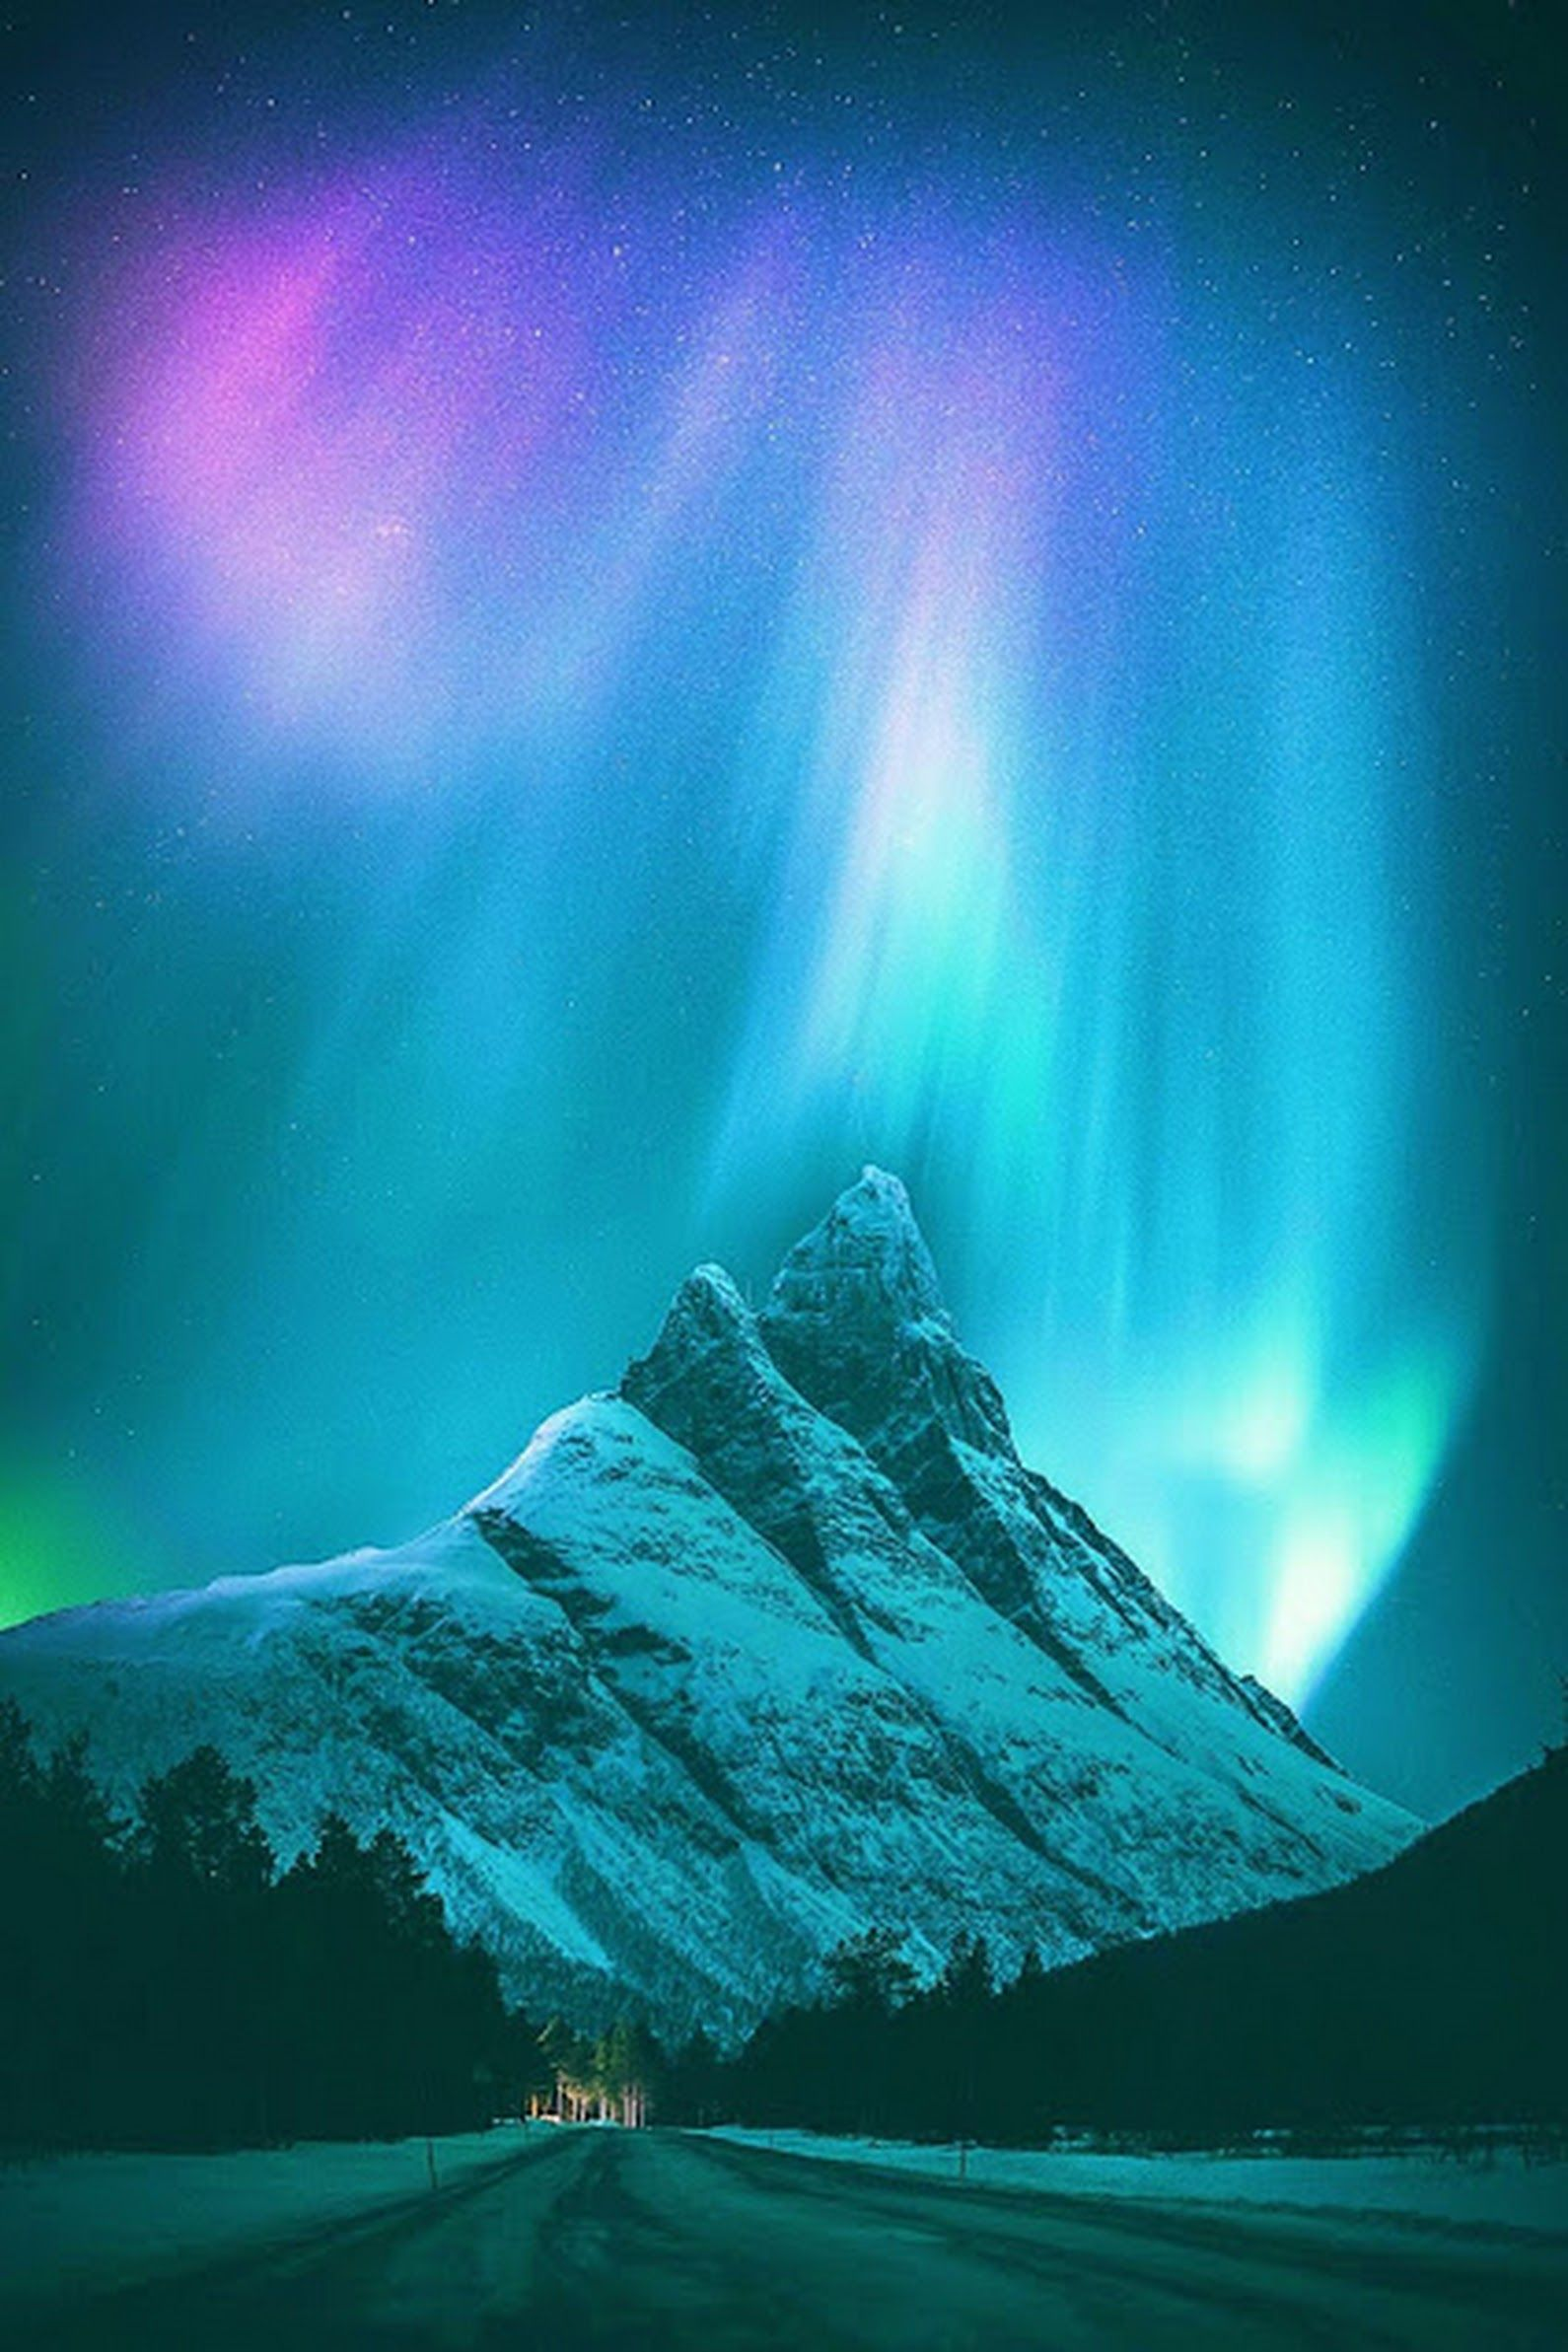 ee73bd566923 Snowy mountains under the Northern lights... ❄⛄❄ - Sophie Lynn Howard -  Google+